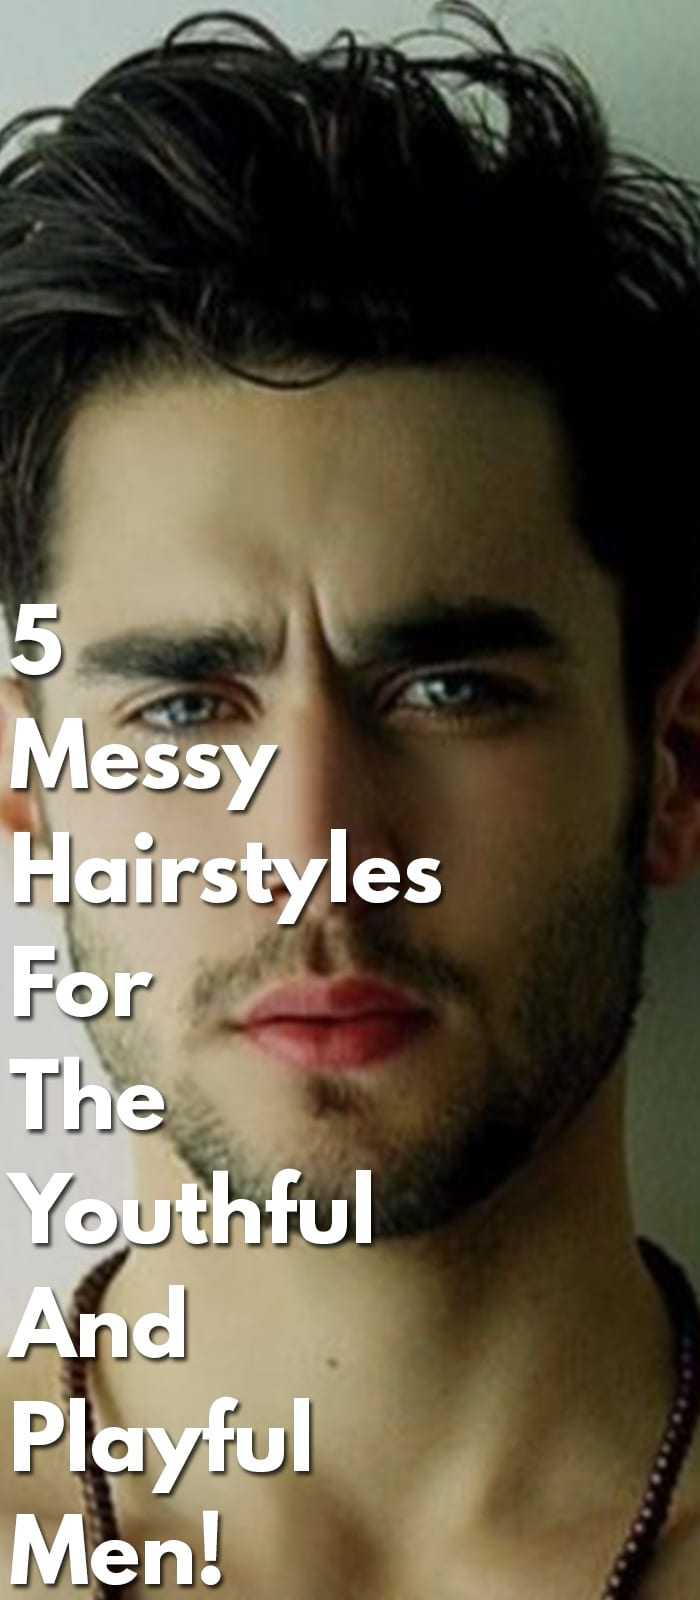 5-Messy-Hairstyles-For-The-Youthful-And-Playful-Men!..